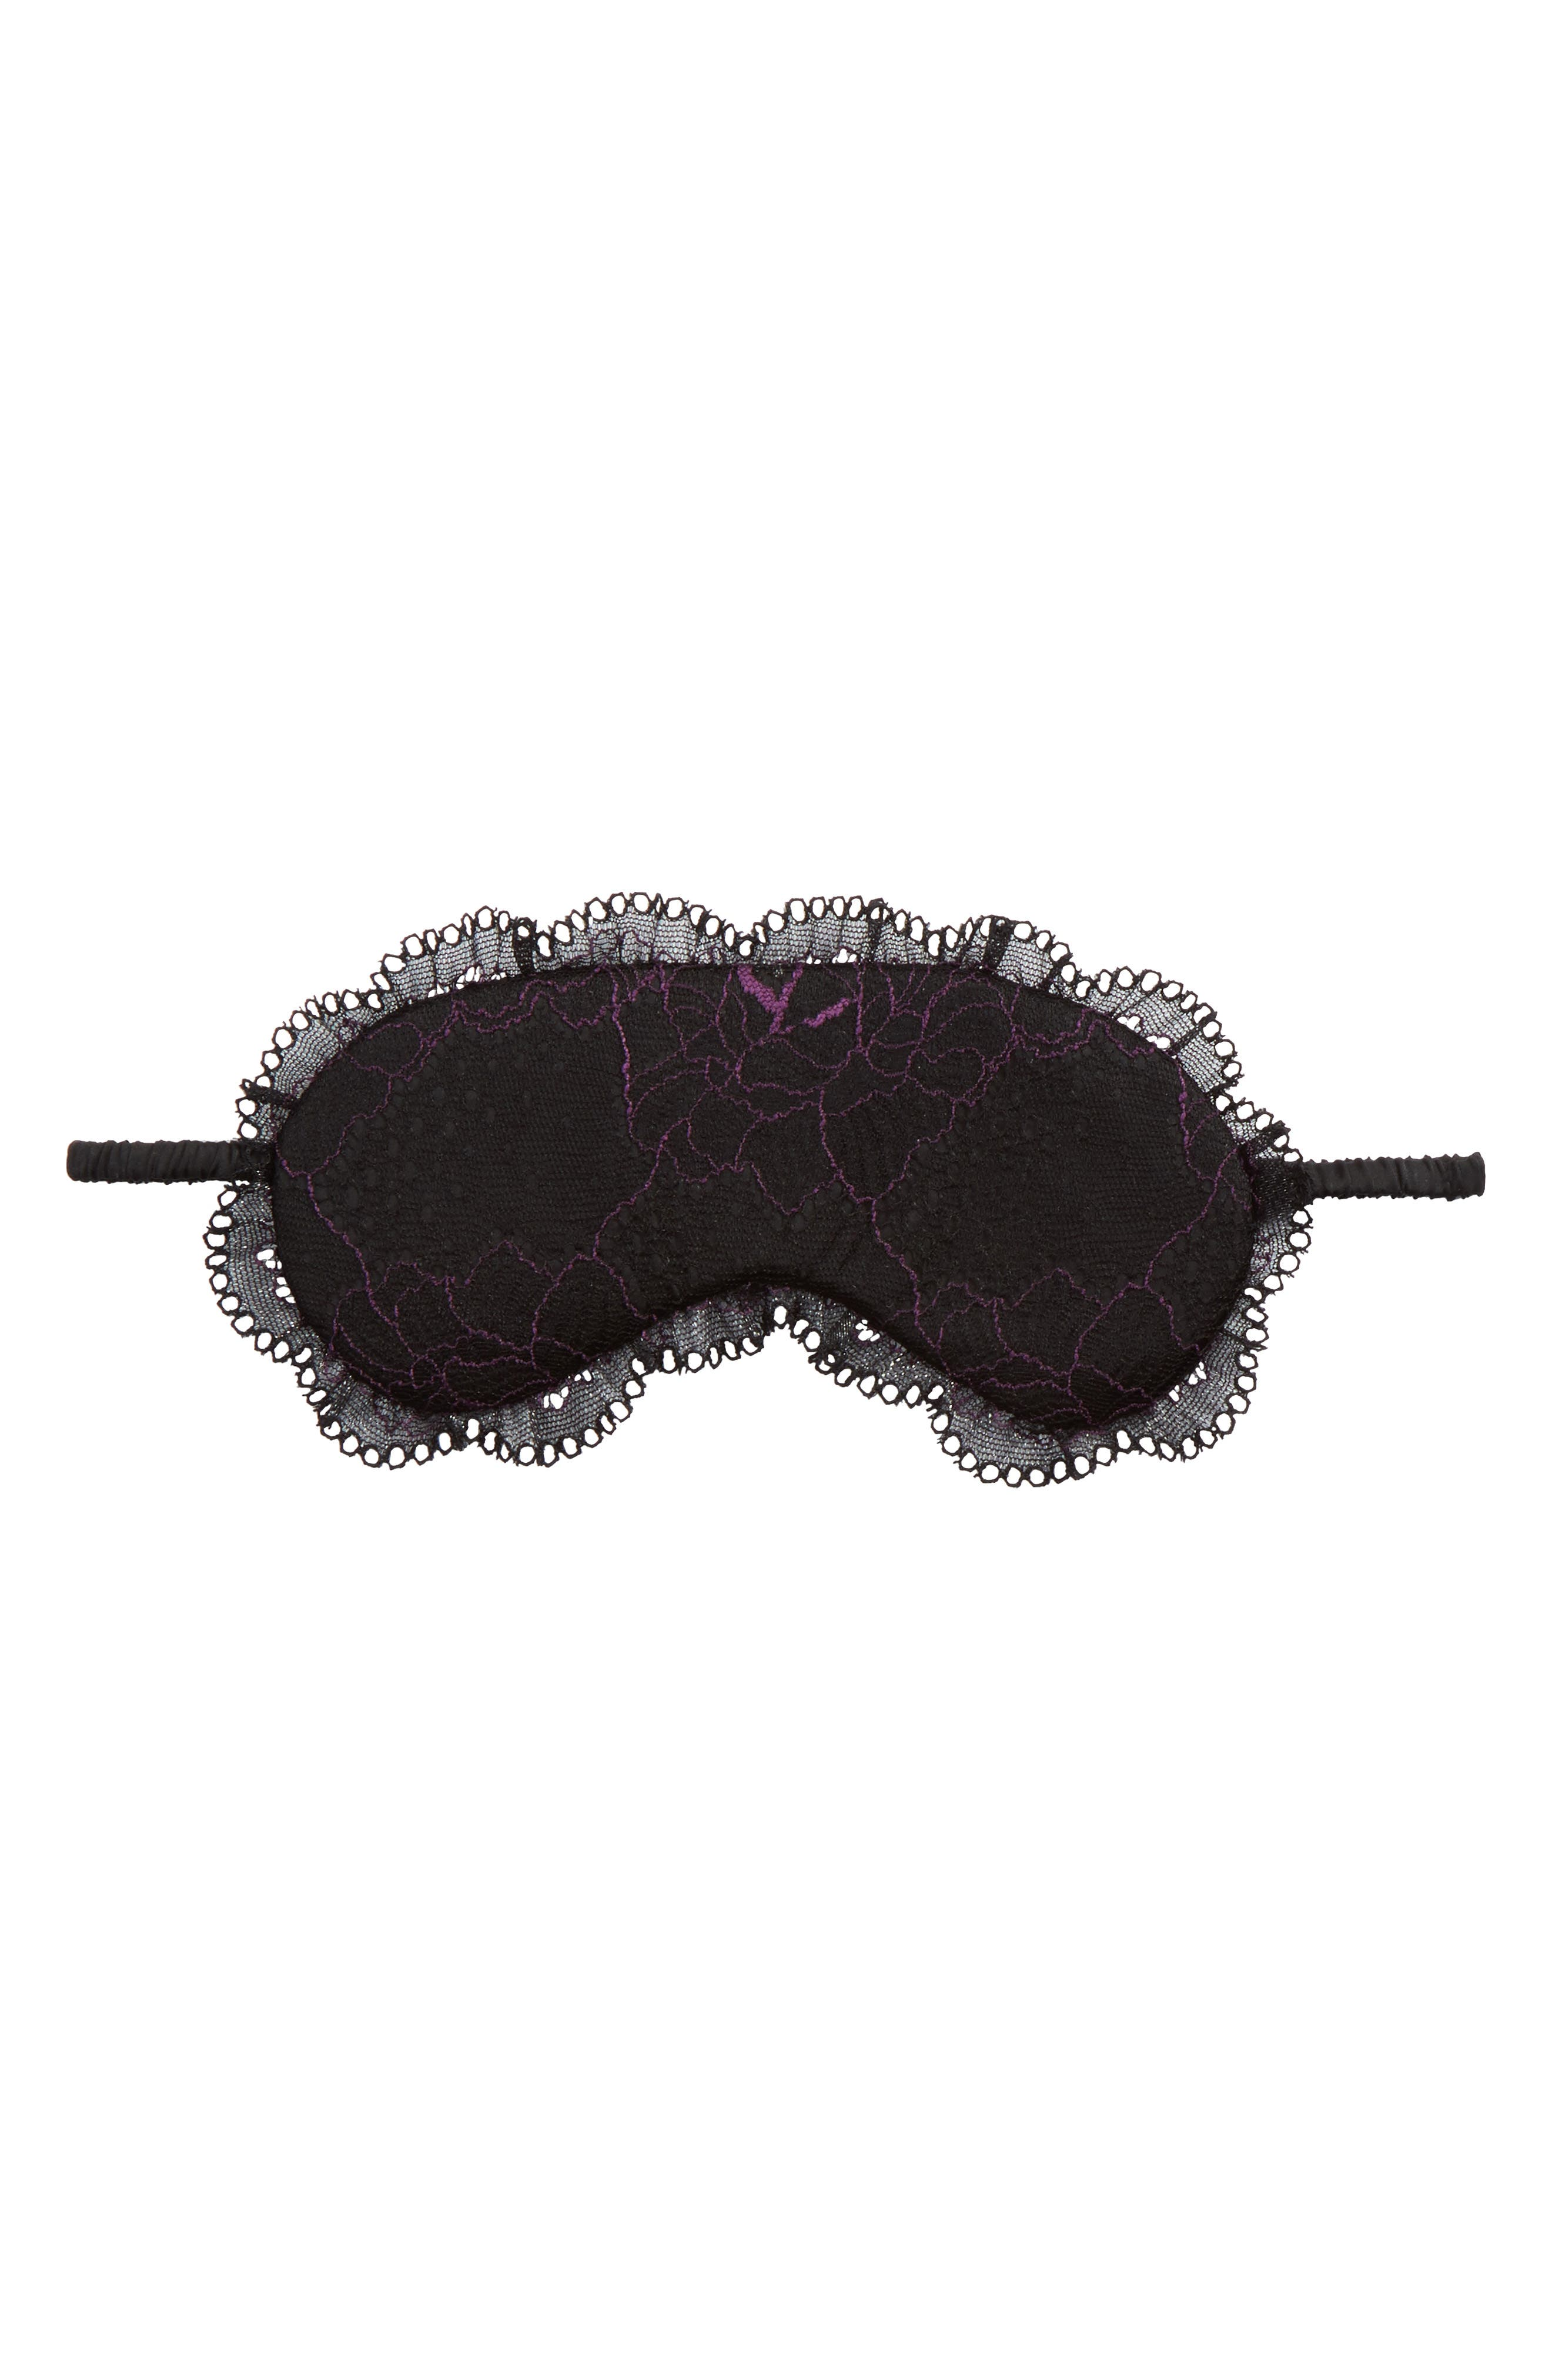 Flirty Sleep Mask,                             Main thumbnail 1, color,